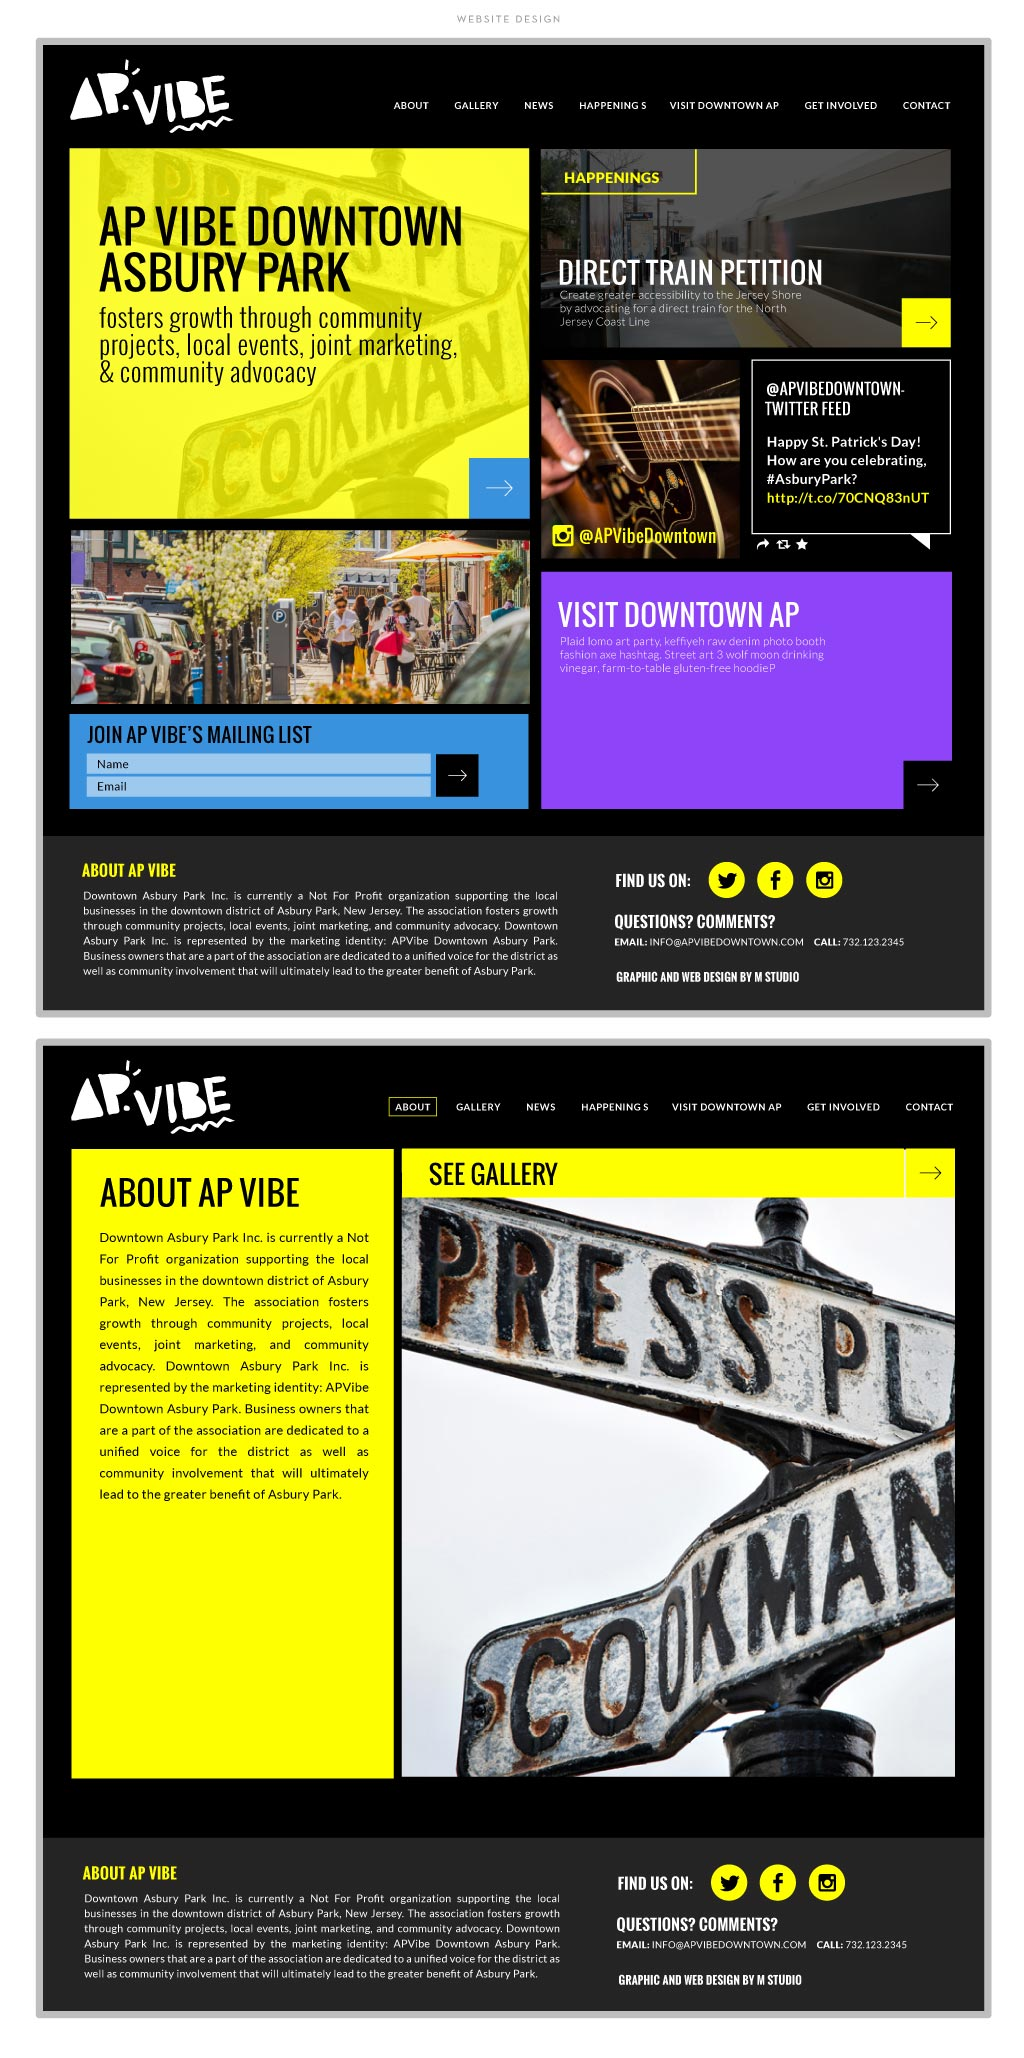 AP Vibe web design by M studio